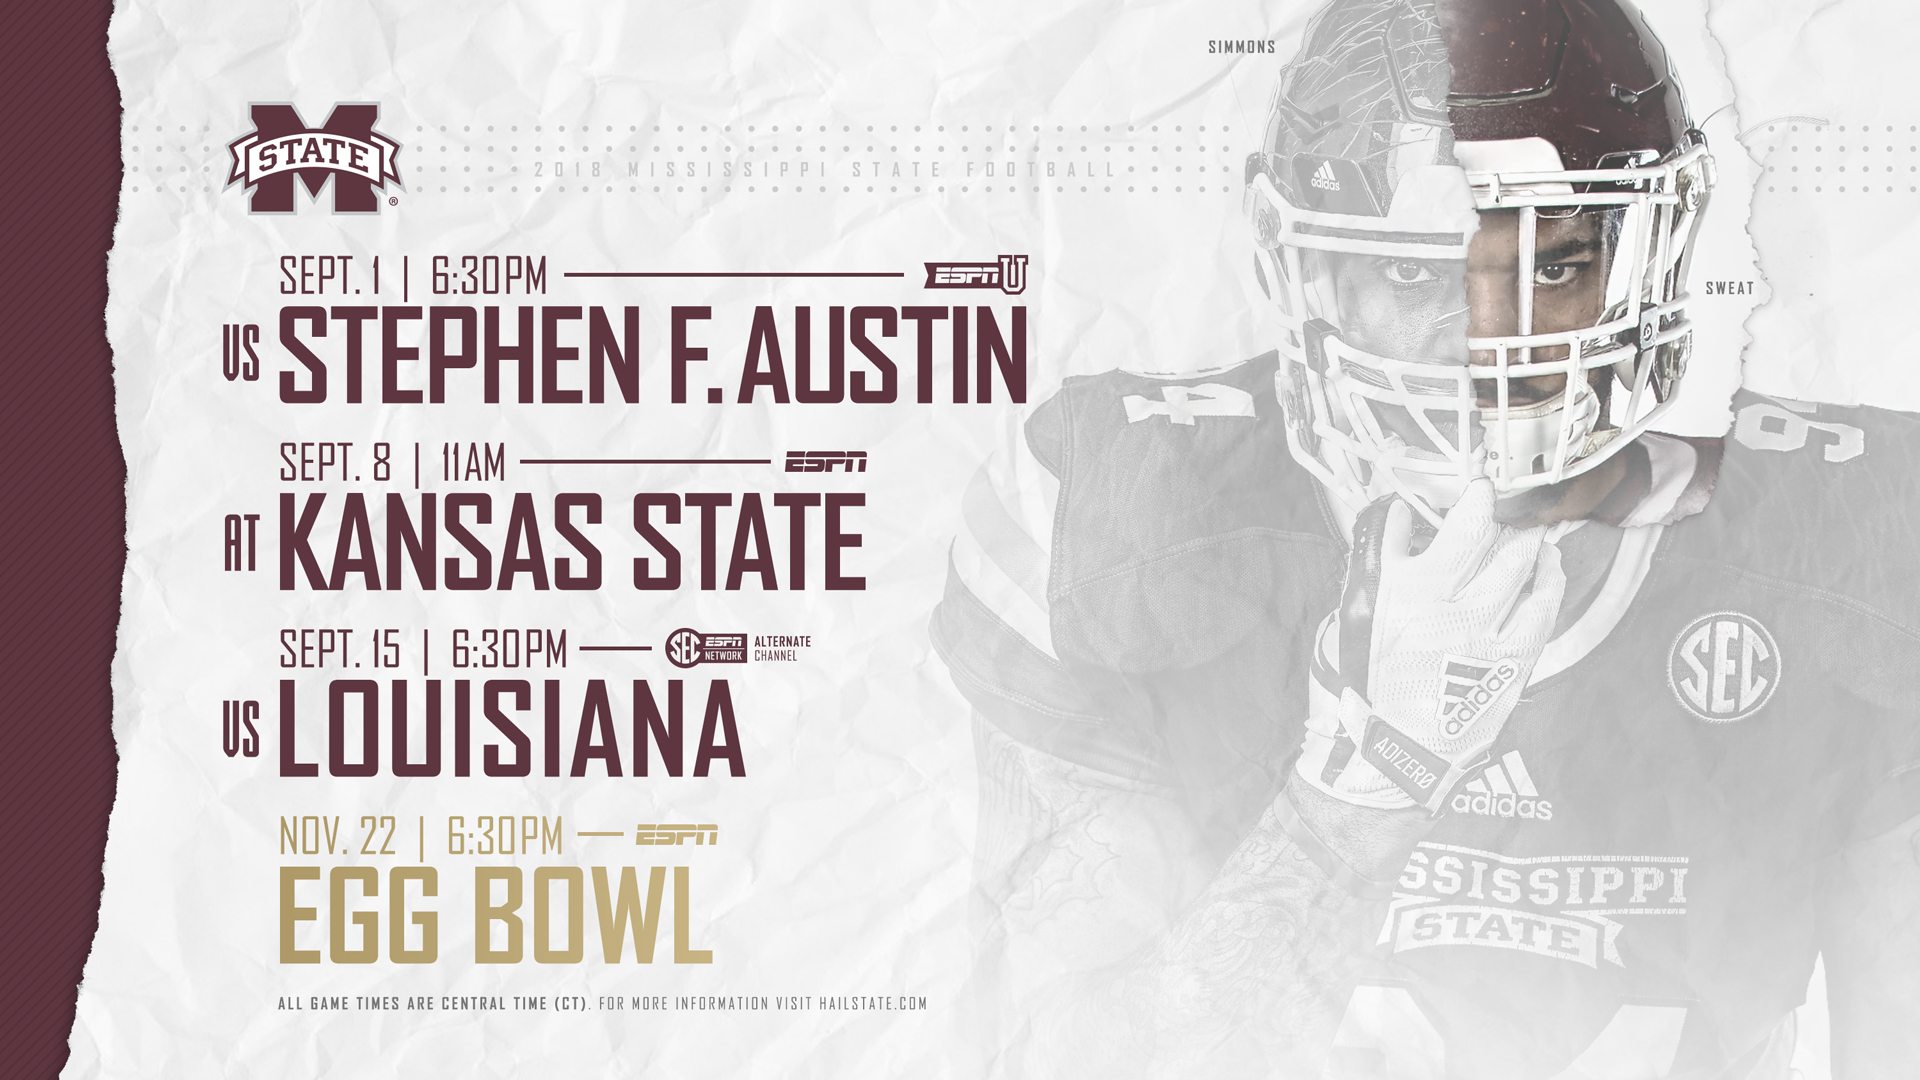 Kick Times Tv Info Released For Msu S First Three Games Egg Bowl